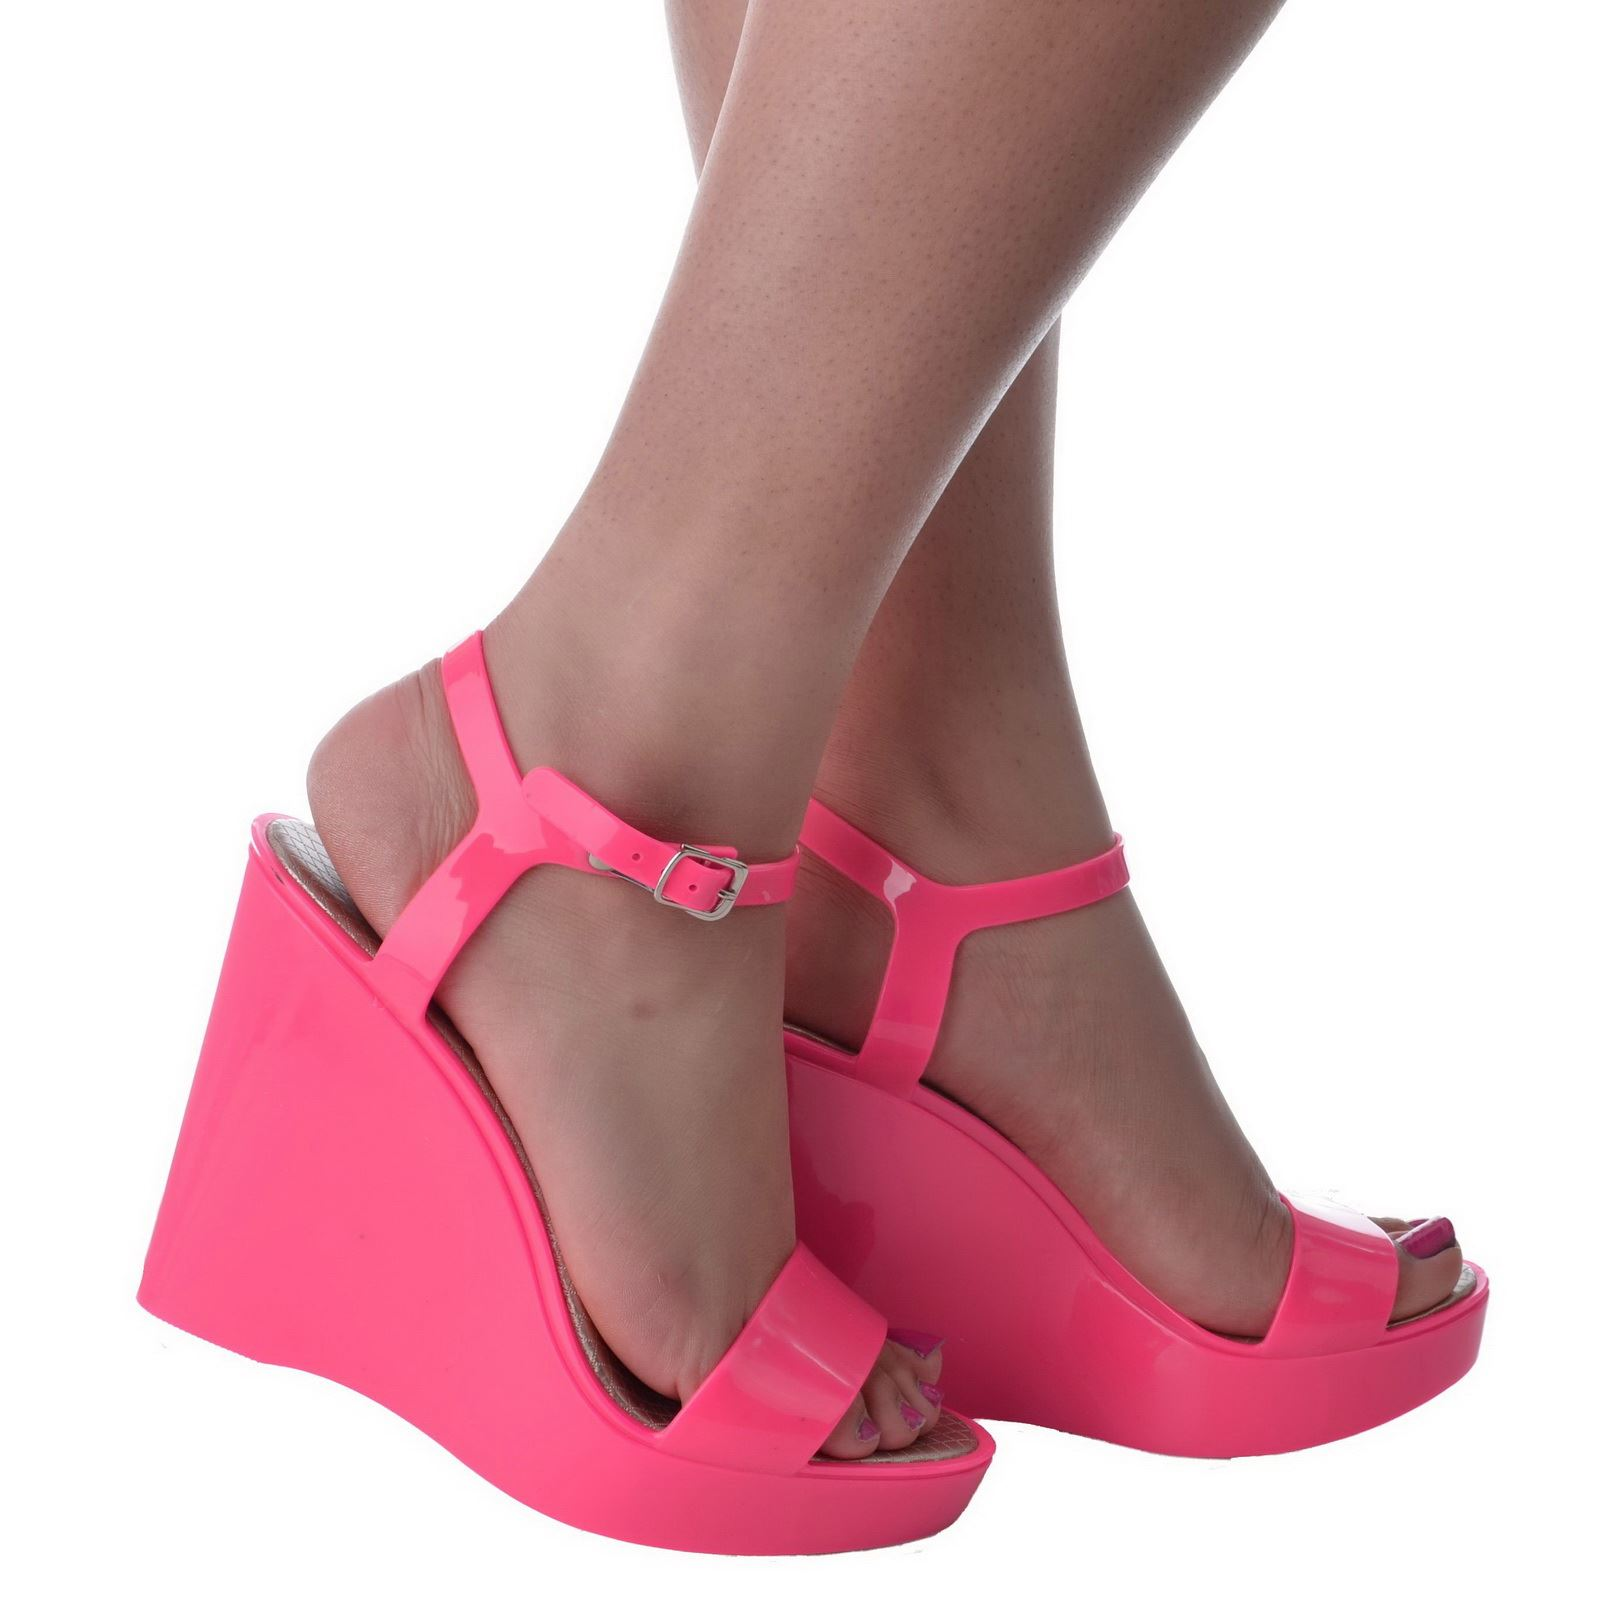 womens high heel wedges ankle open toe jelly